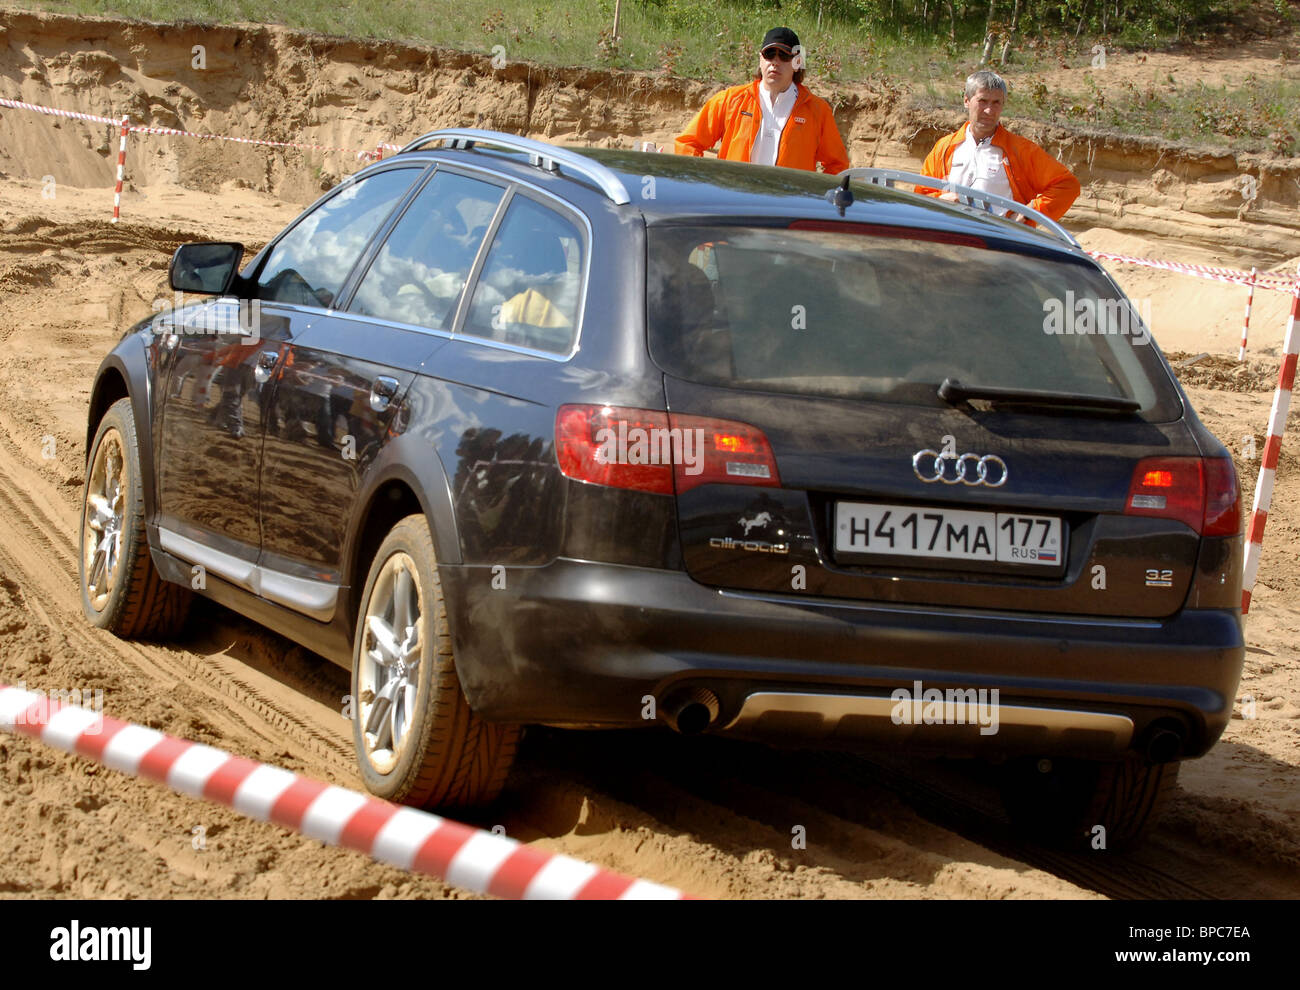 Presentation of Audi A6 allroad quattro automobile at Code d'Azur country club near Moscow - Stock Image